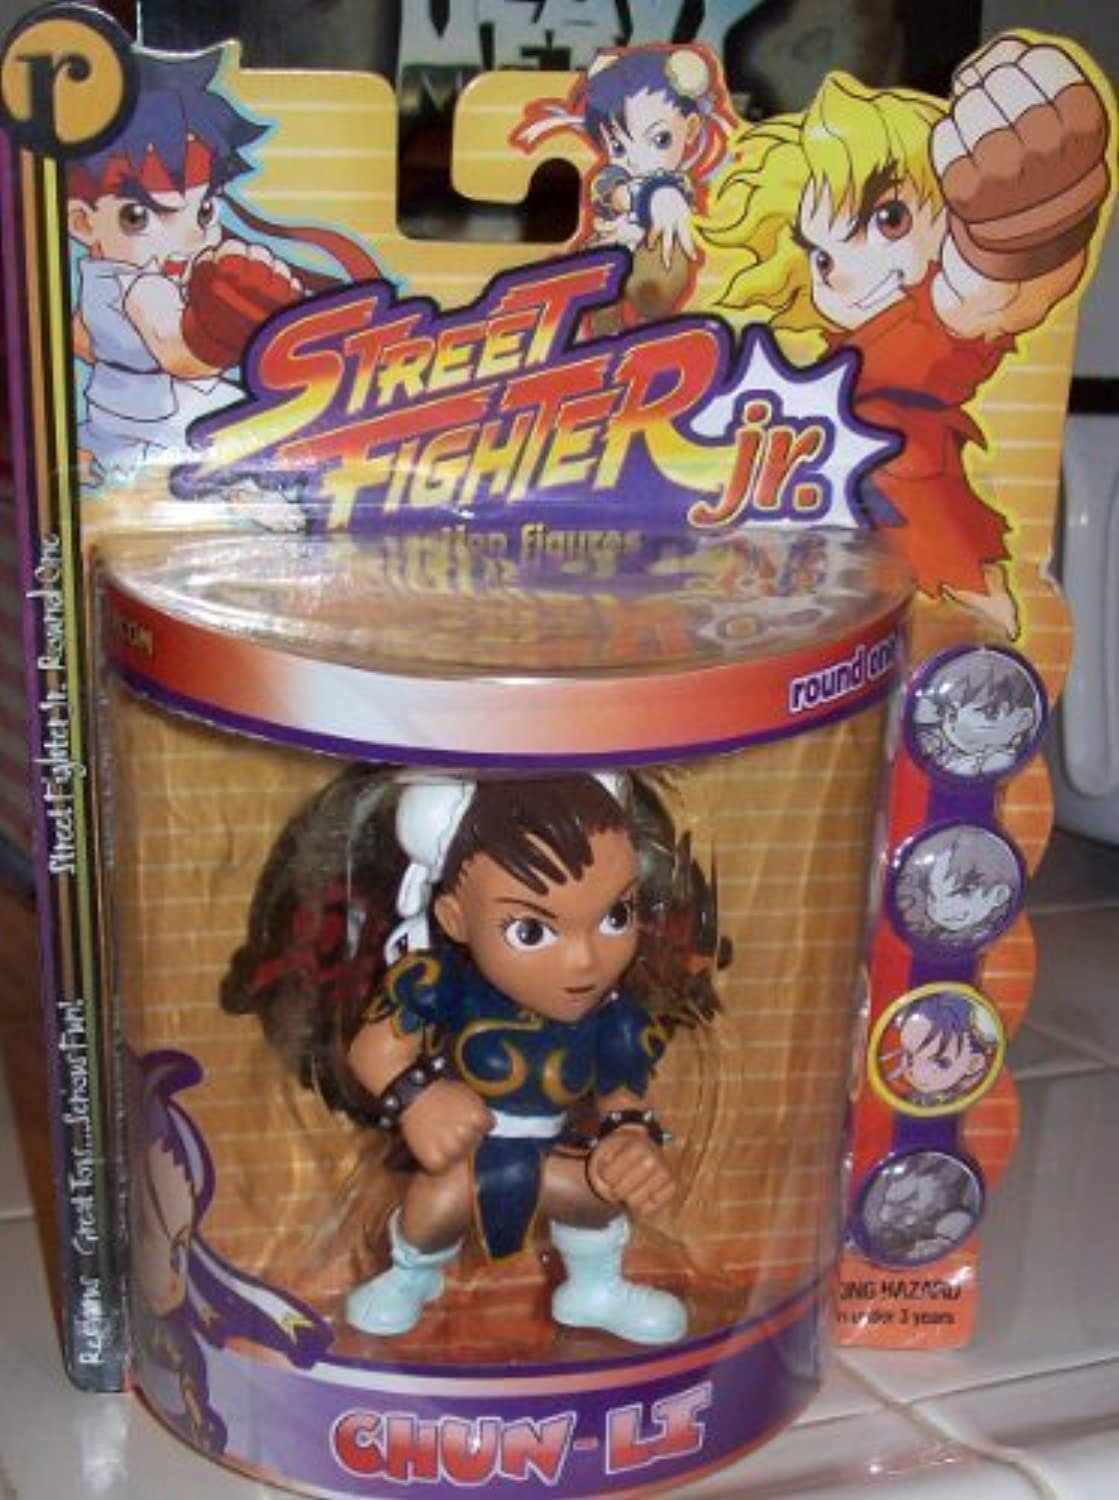 STREET FIGHTER JR. CHUNLI ACTION FIGURE by Street Fighter by Street Fighter